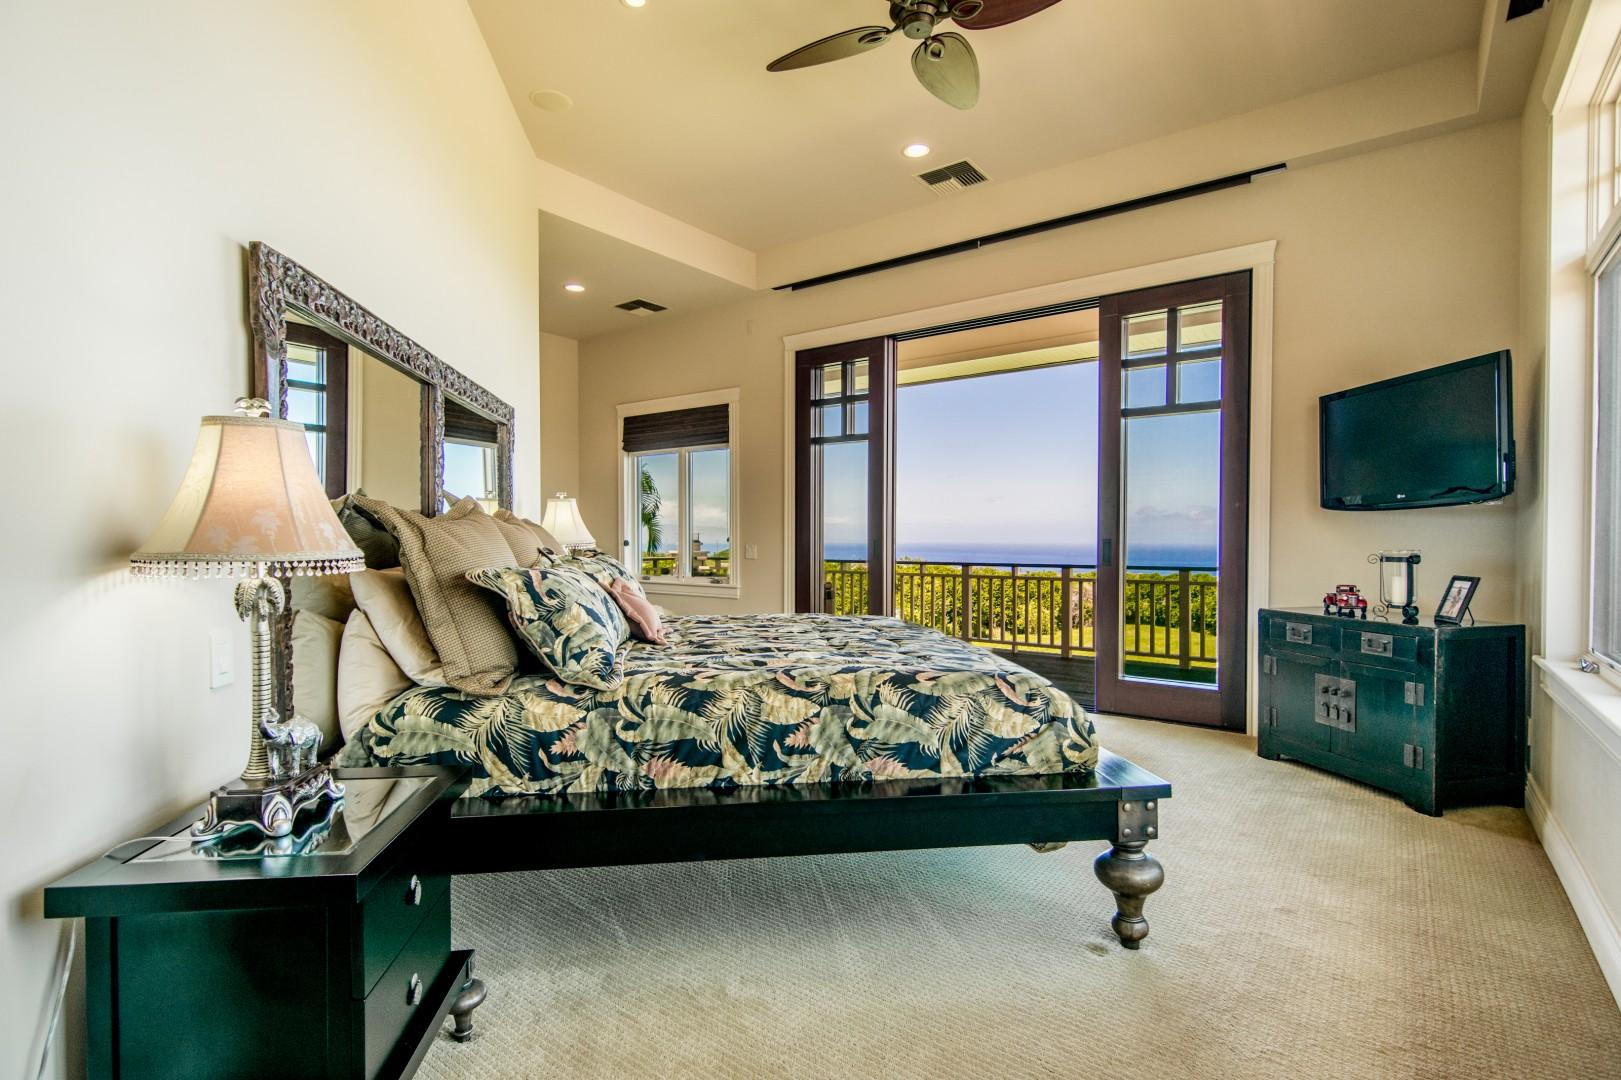 Master Bedroom with Full Lanai Access and Full Doors to Enjoy the Maui Ocean Trade Winds With Custom Decor and Furnishings